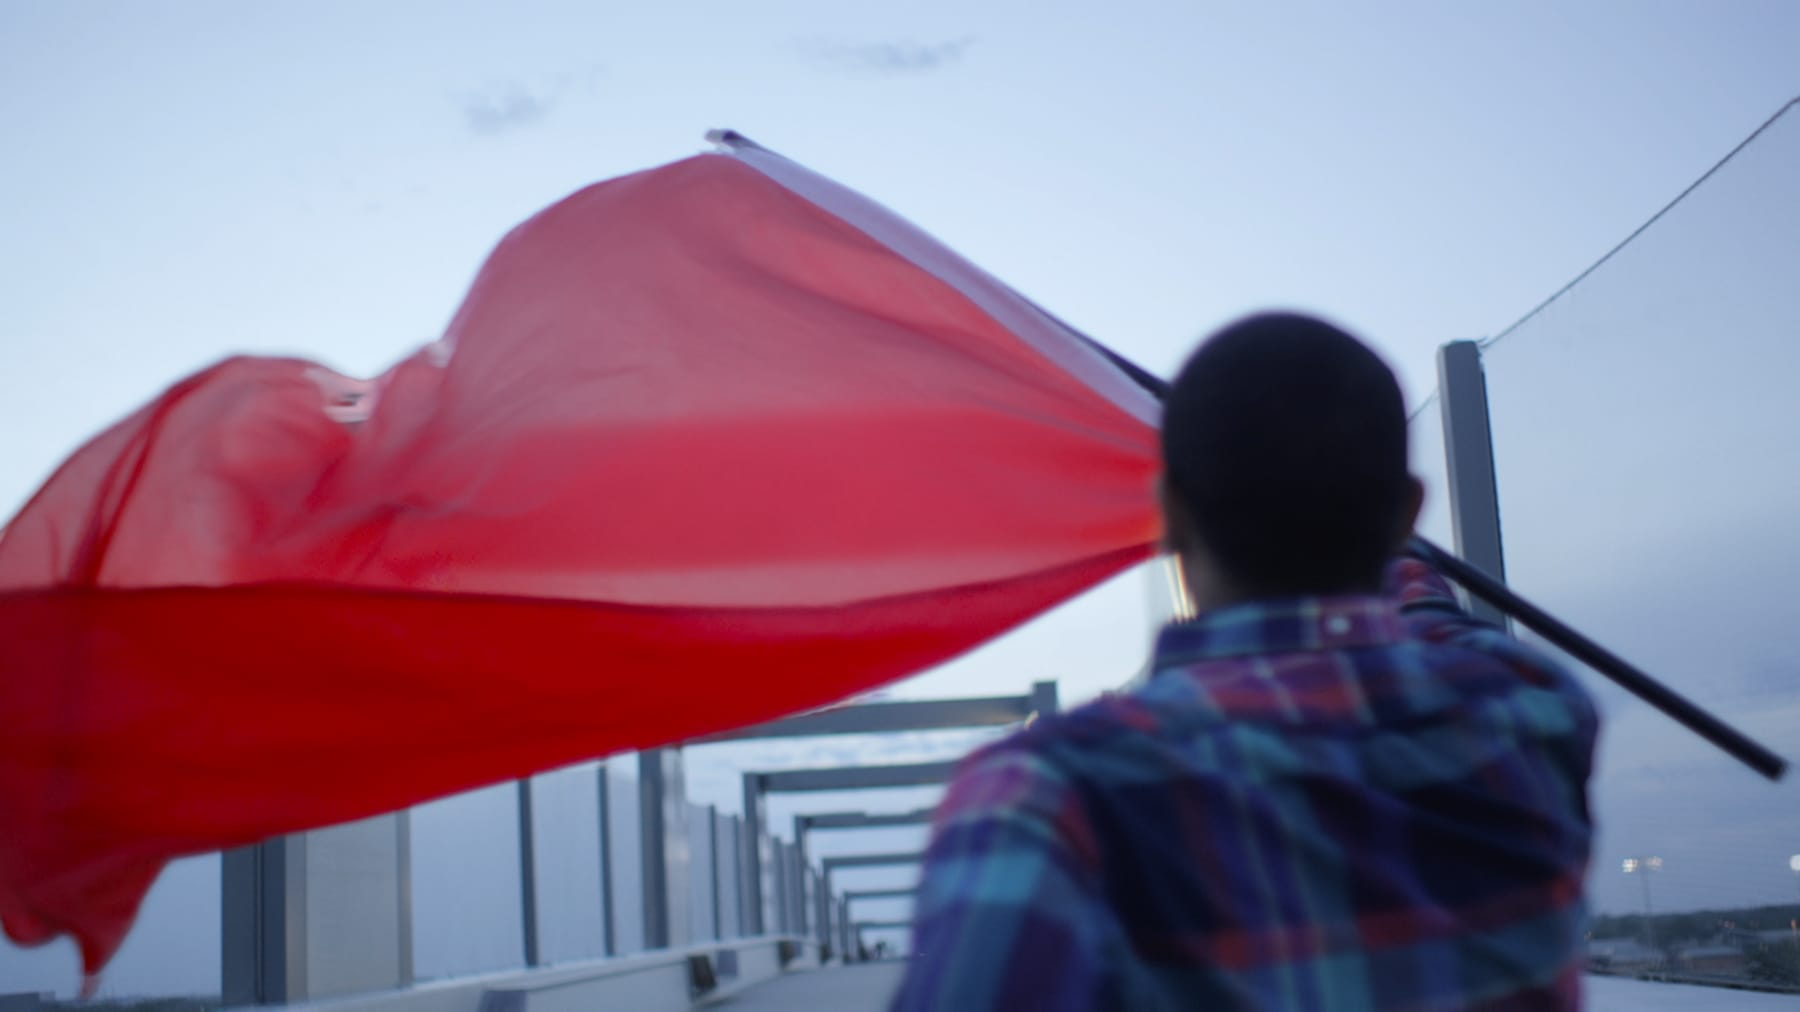 A student carries a large red flag near Pinnacle Bank Arena